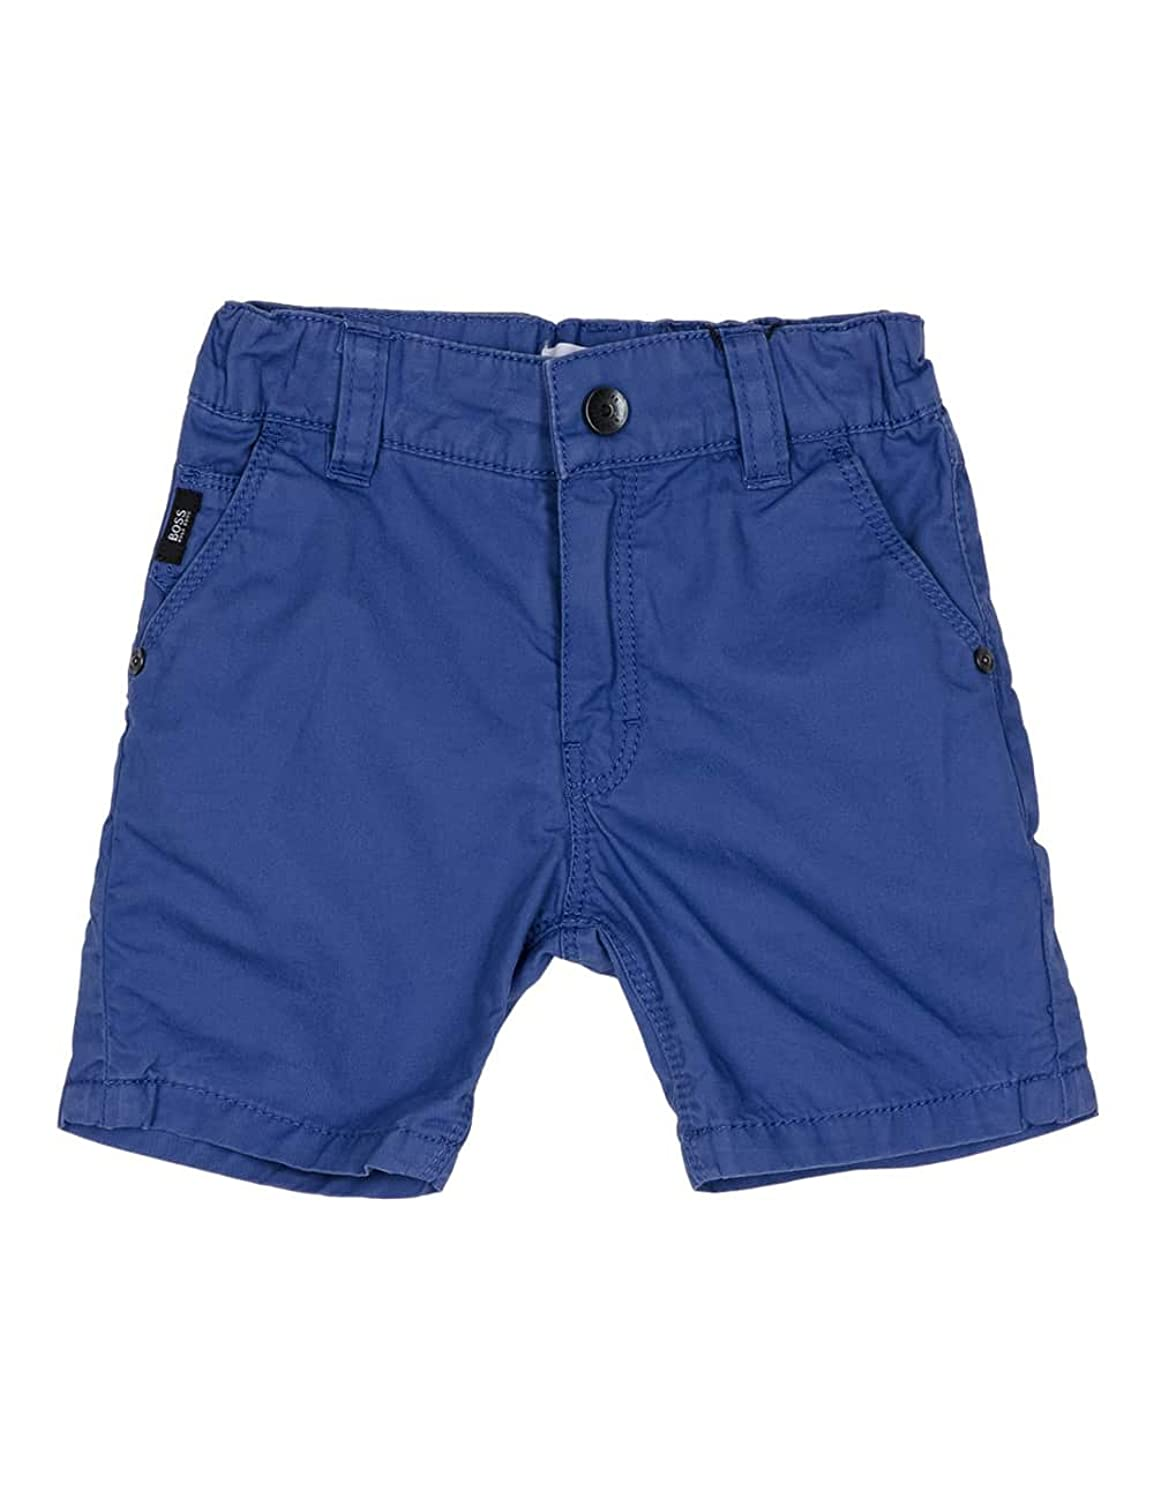 Hugo Boss SHORTS ボーイズ